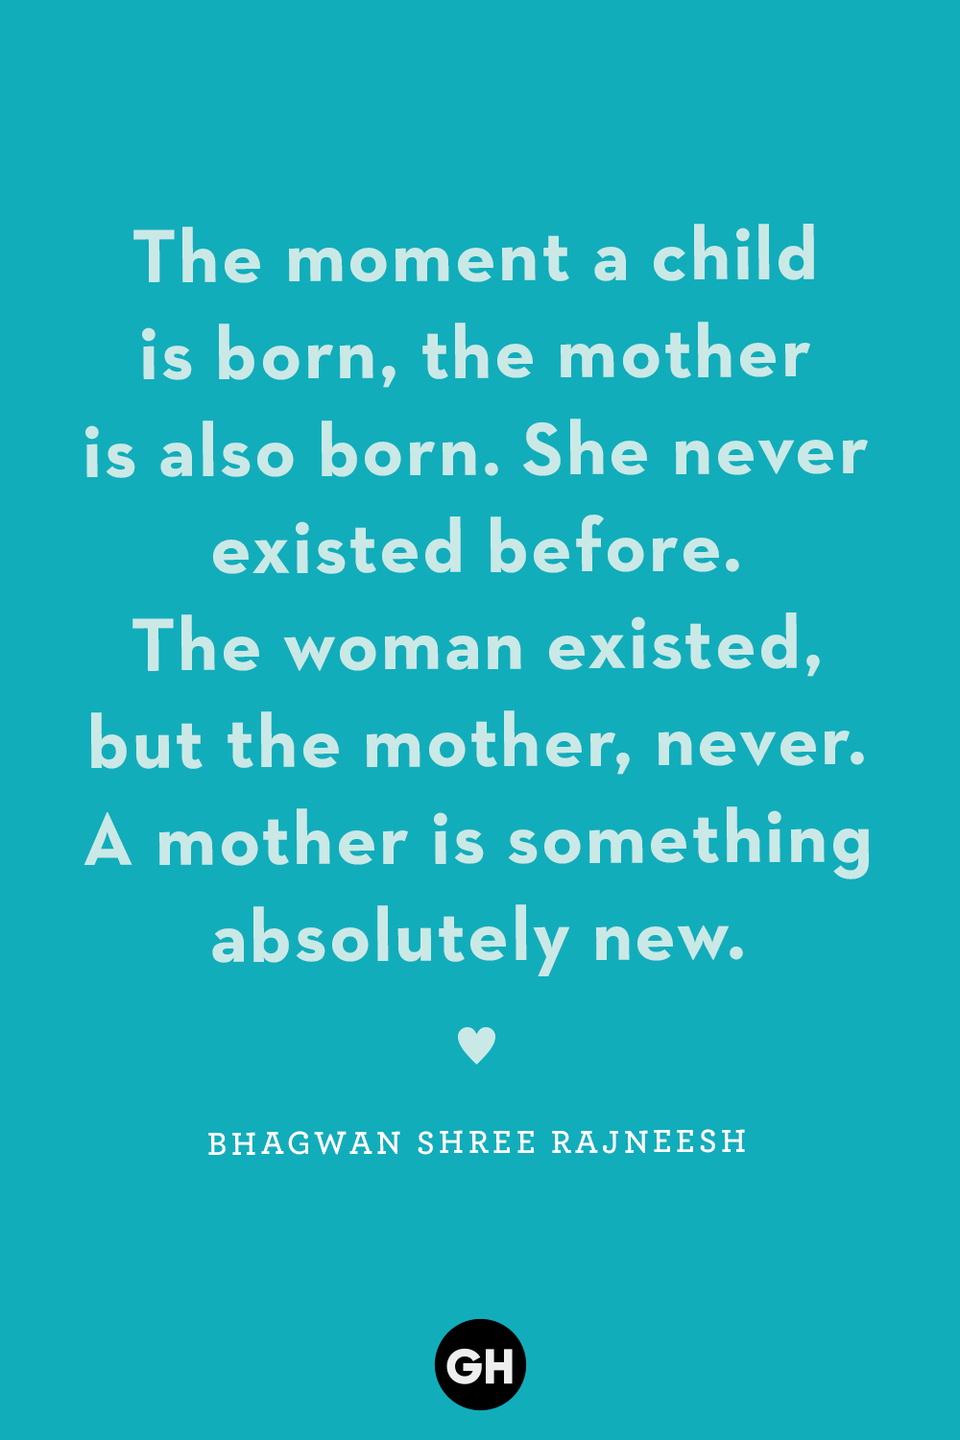 <p>The moment a child is born, the mother is also born. She never existed before. The woman existed, but the mother, never. A mother is something absolutely new.</p>